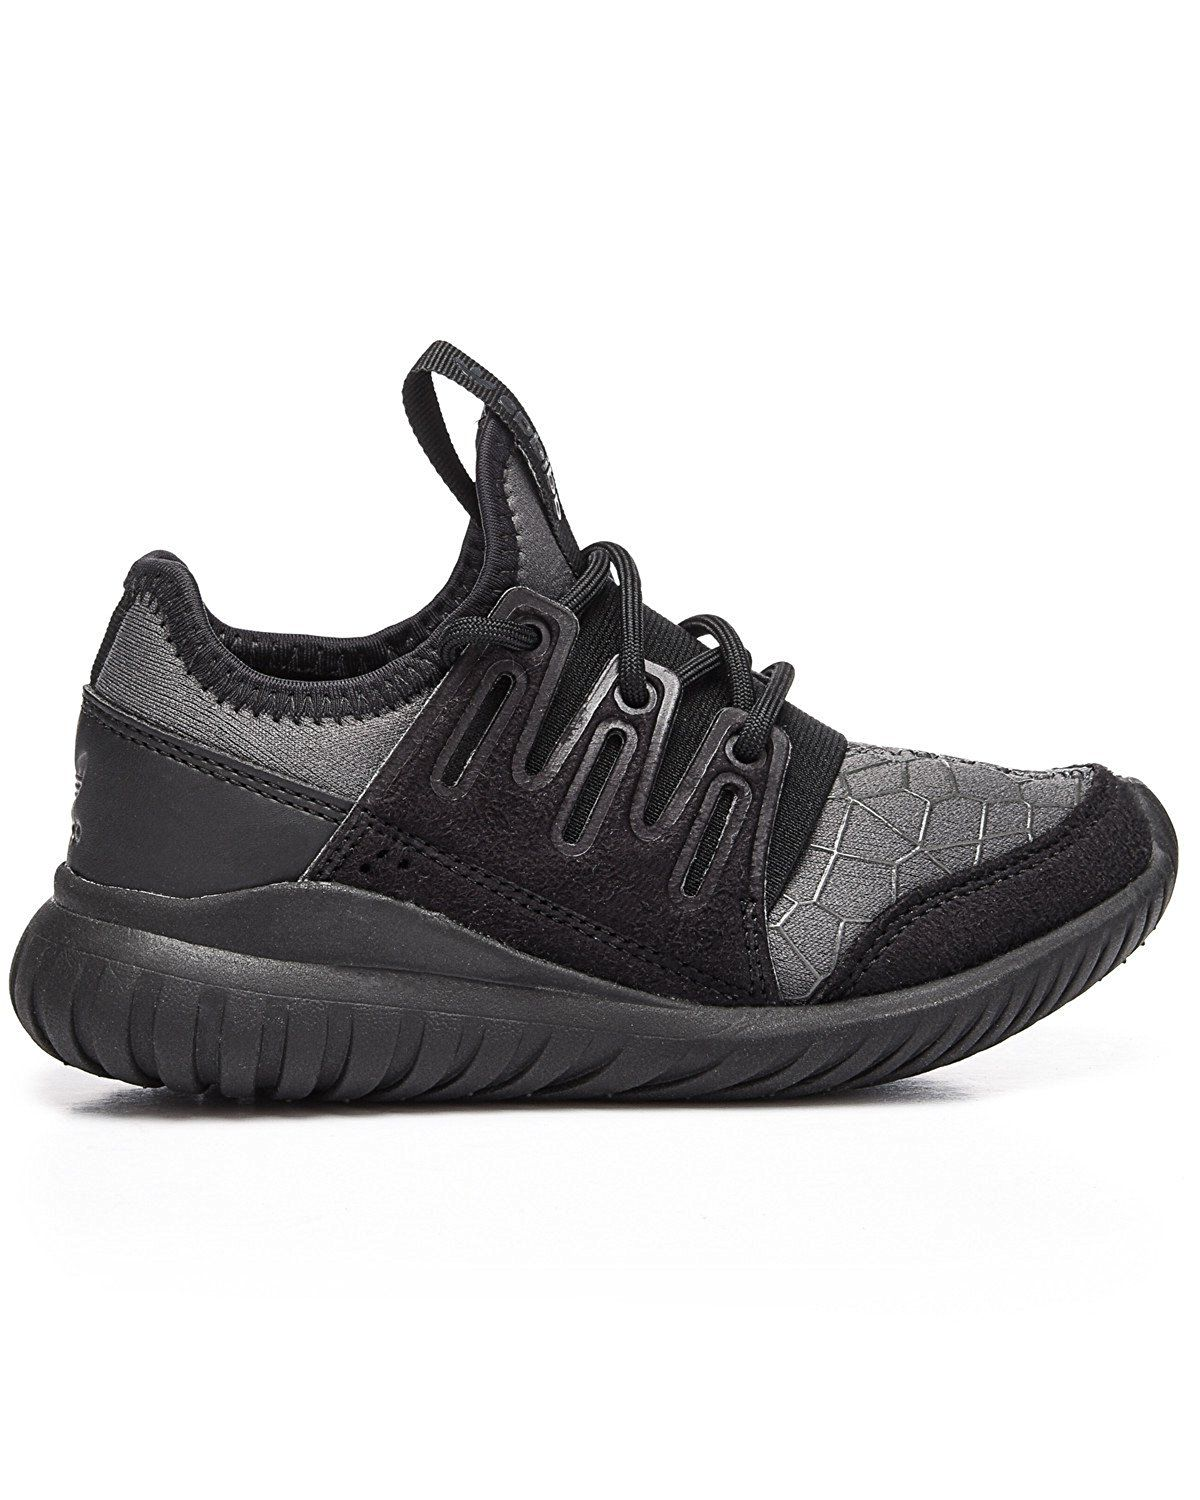 Details about Adidas Originals New Junior Boys Infant Kids Tubular Radial Trainers